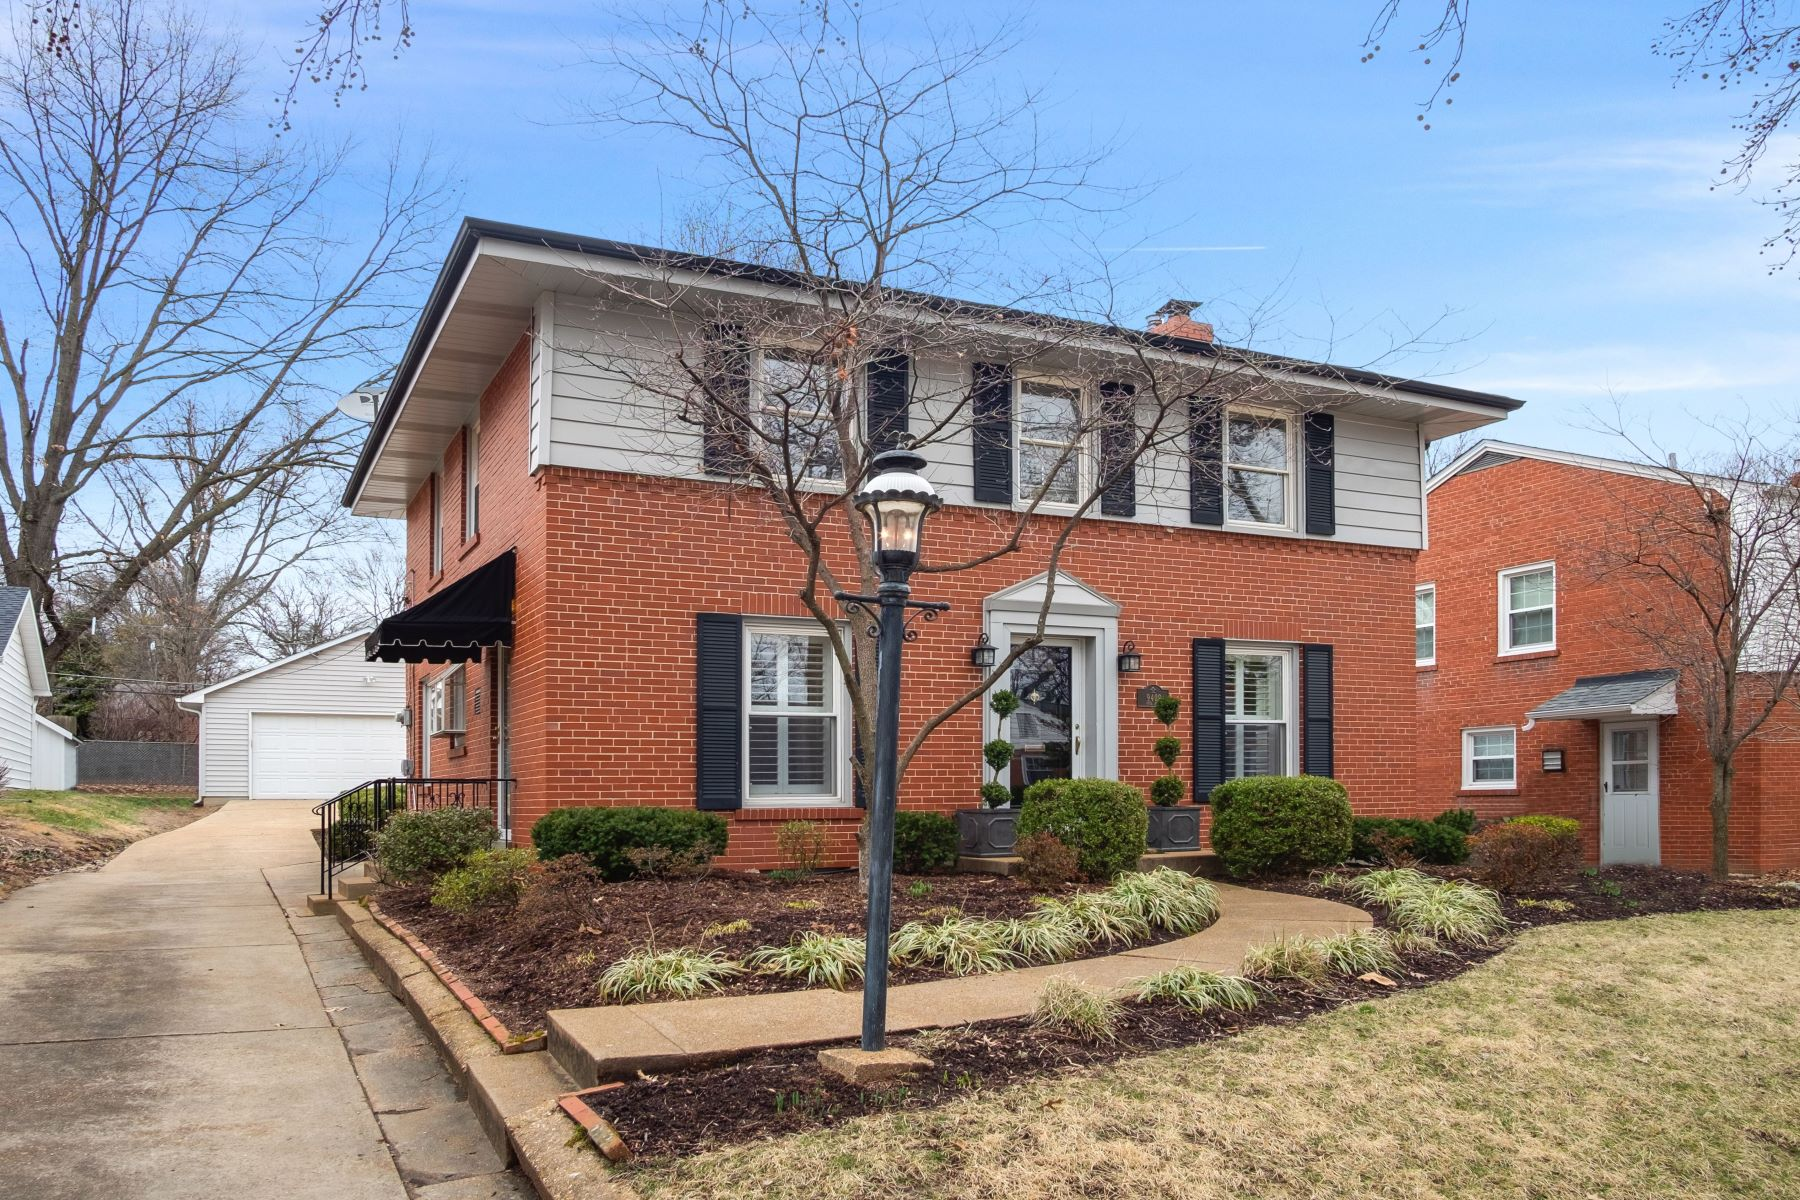 Single Family Homes for Sale at Brentwood Charm! 9409 Pine Avenue Brentwood, Missouri 63144 United States